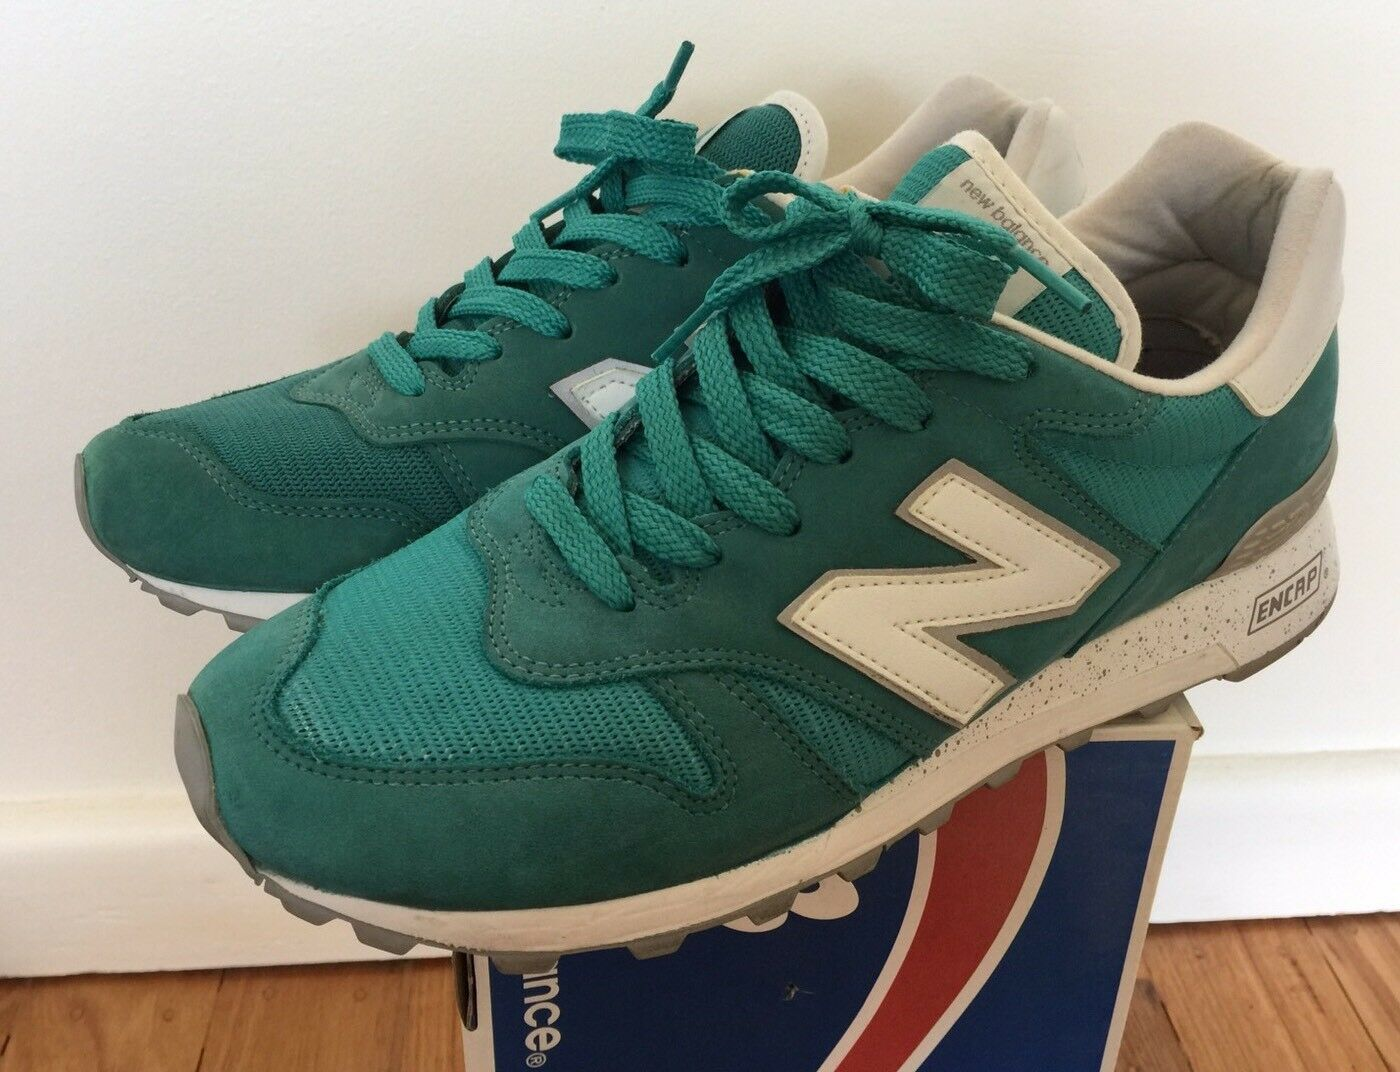 New Balance 1300 Made In In In USA 9.5 Green Teal White Grey 998 1500 1400 1600 ca627d